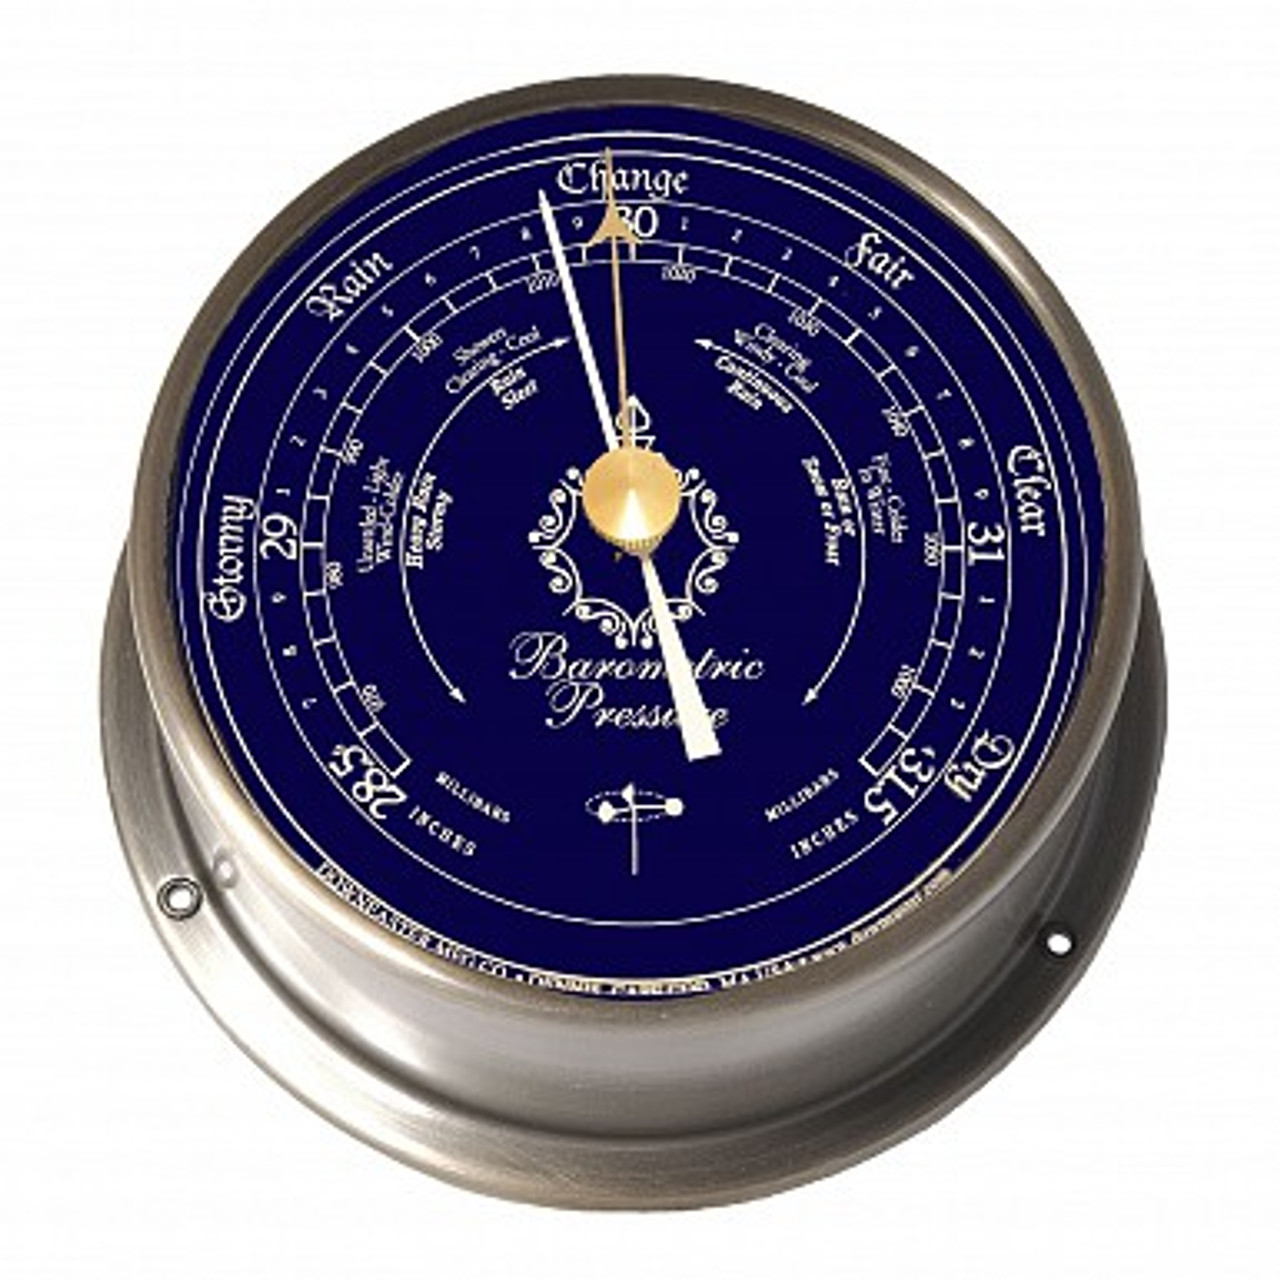 Downeaster Barometer Nautical Instrument, Blue Face - 6""